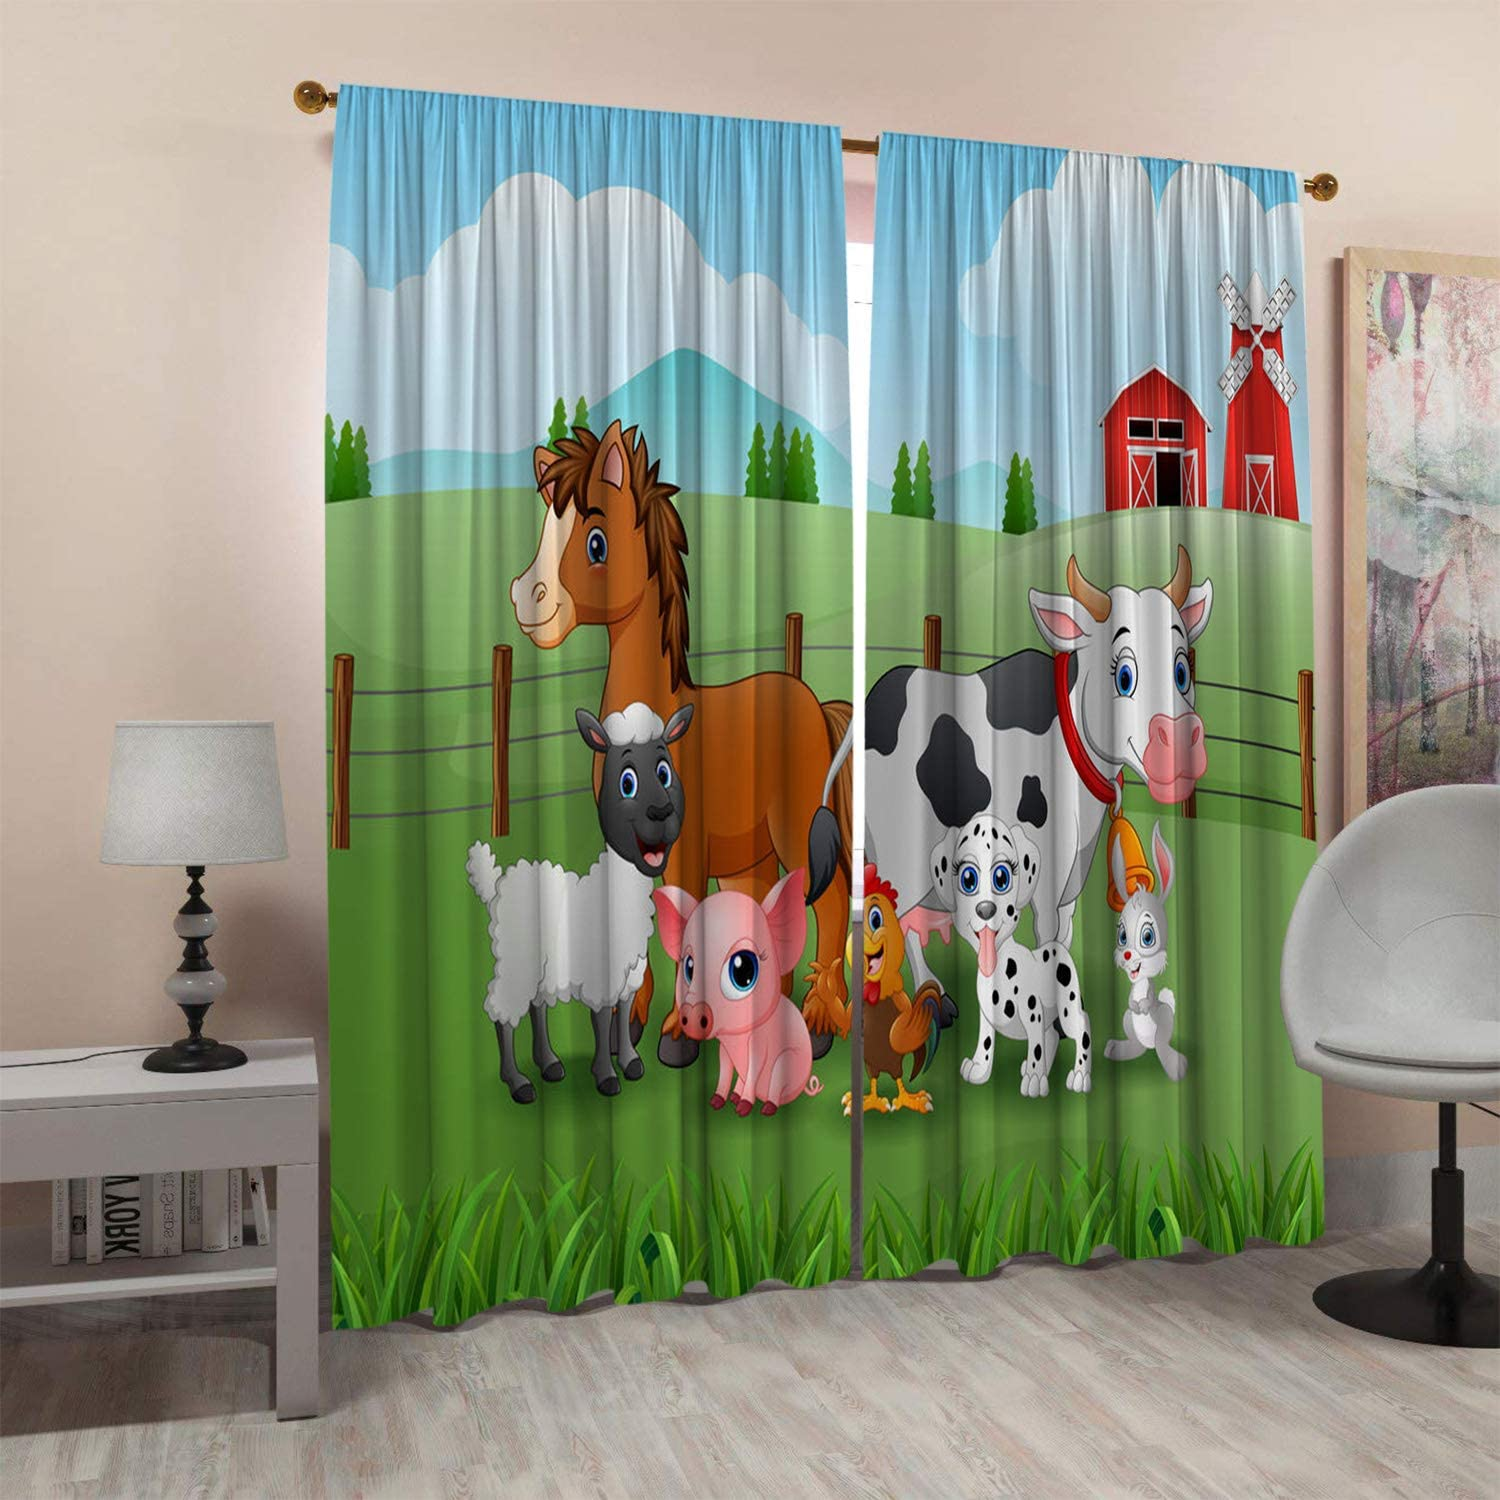 SeptSonne Kids Room Window Curtain Panels Drapes Animal Farm in The Mountains Curtains for Little Boys Room Artwork Customized Curtains 42x45 Inch